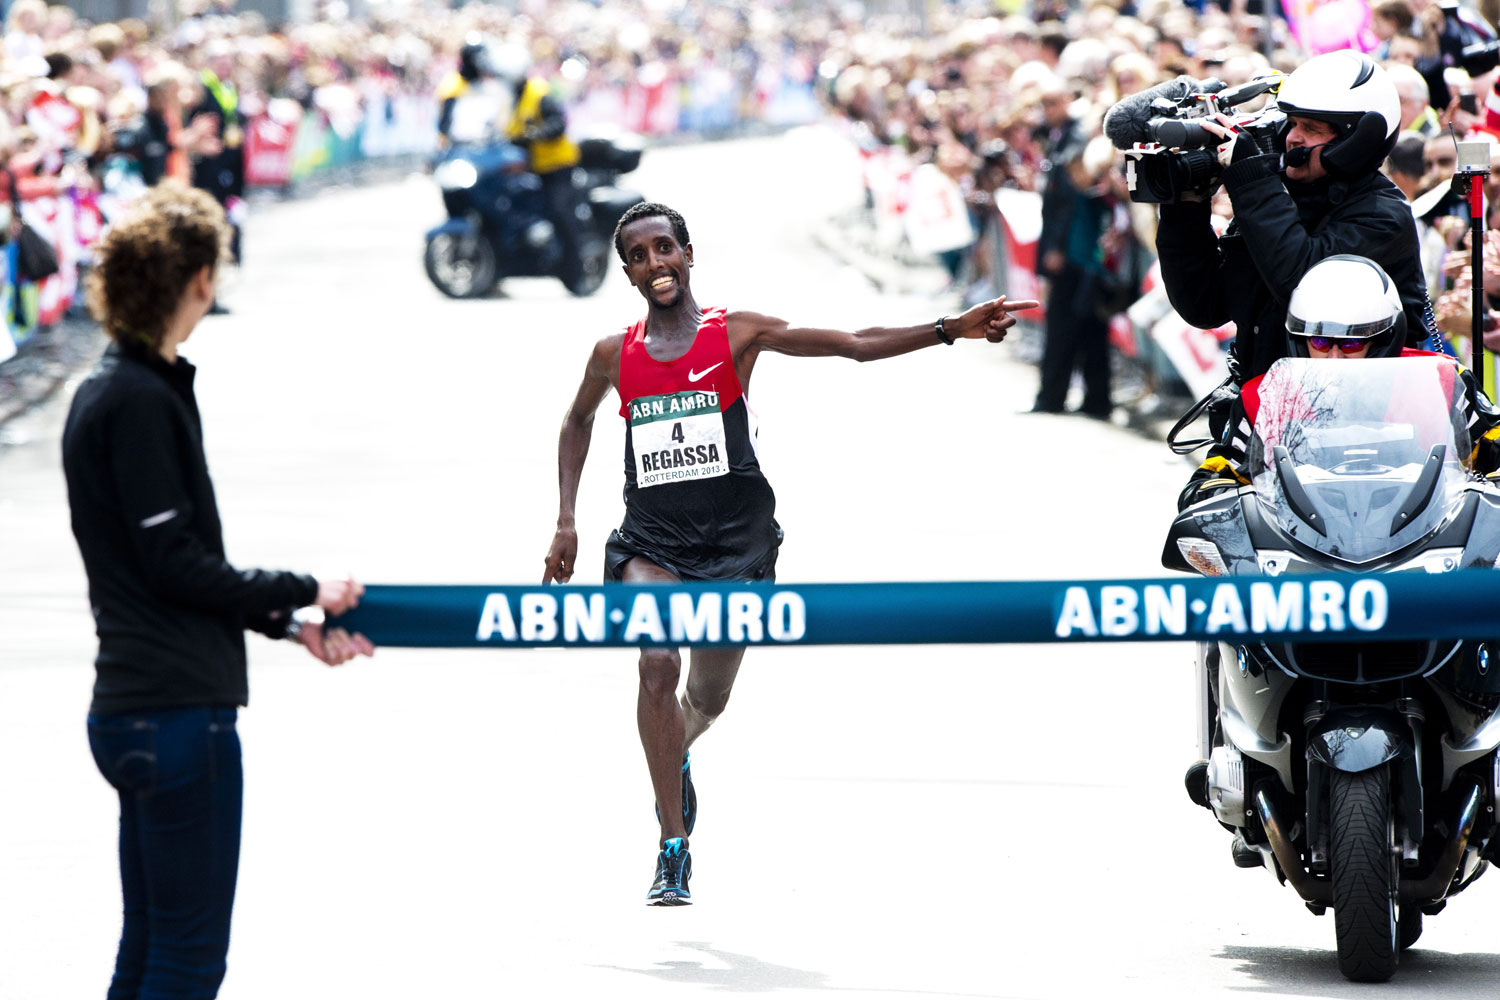 Ethiopia's Tilahun Regassa celebrates as he crosses the finish line to win the Rotterdam Marathon on April 14, 2013.